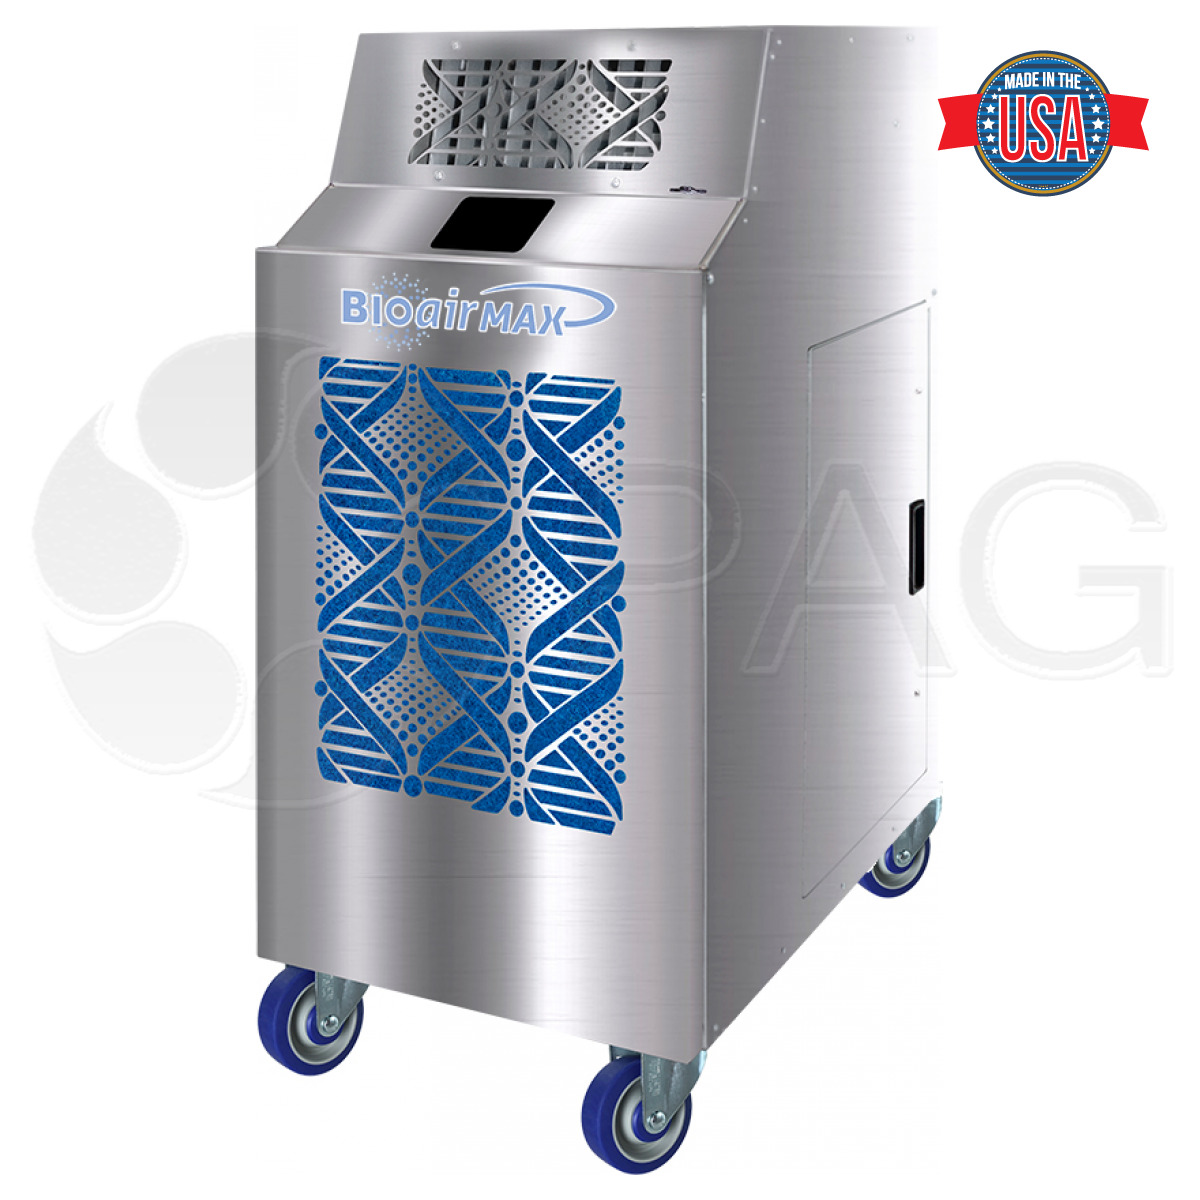 The Bioair MAX KBX600 KBX1000 KBX1800 Portable HEPA unit with UV-C lights and NPBI Technology!